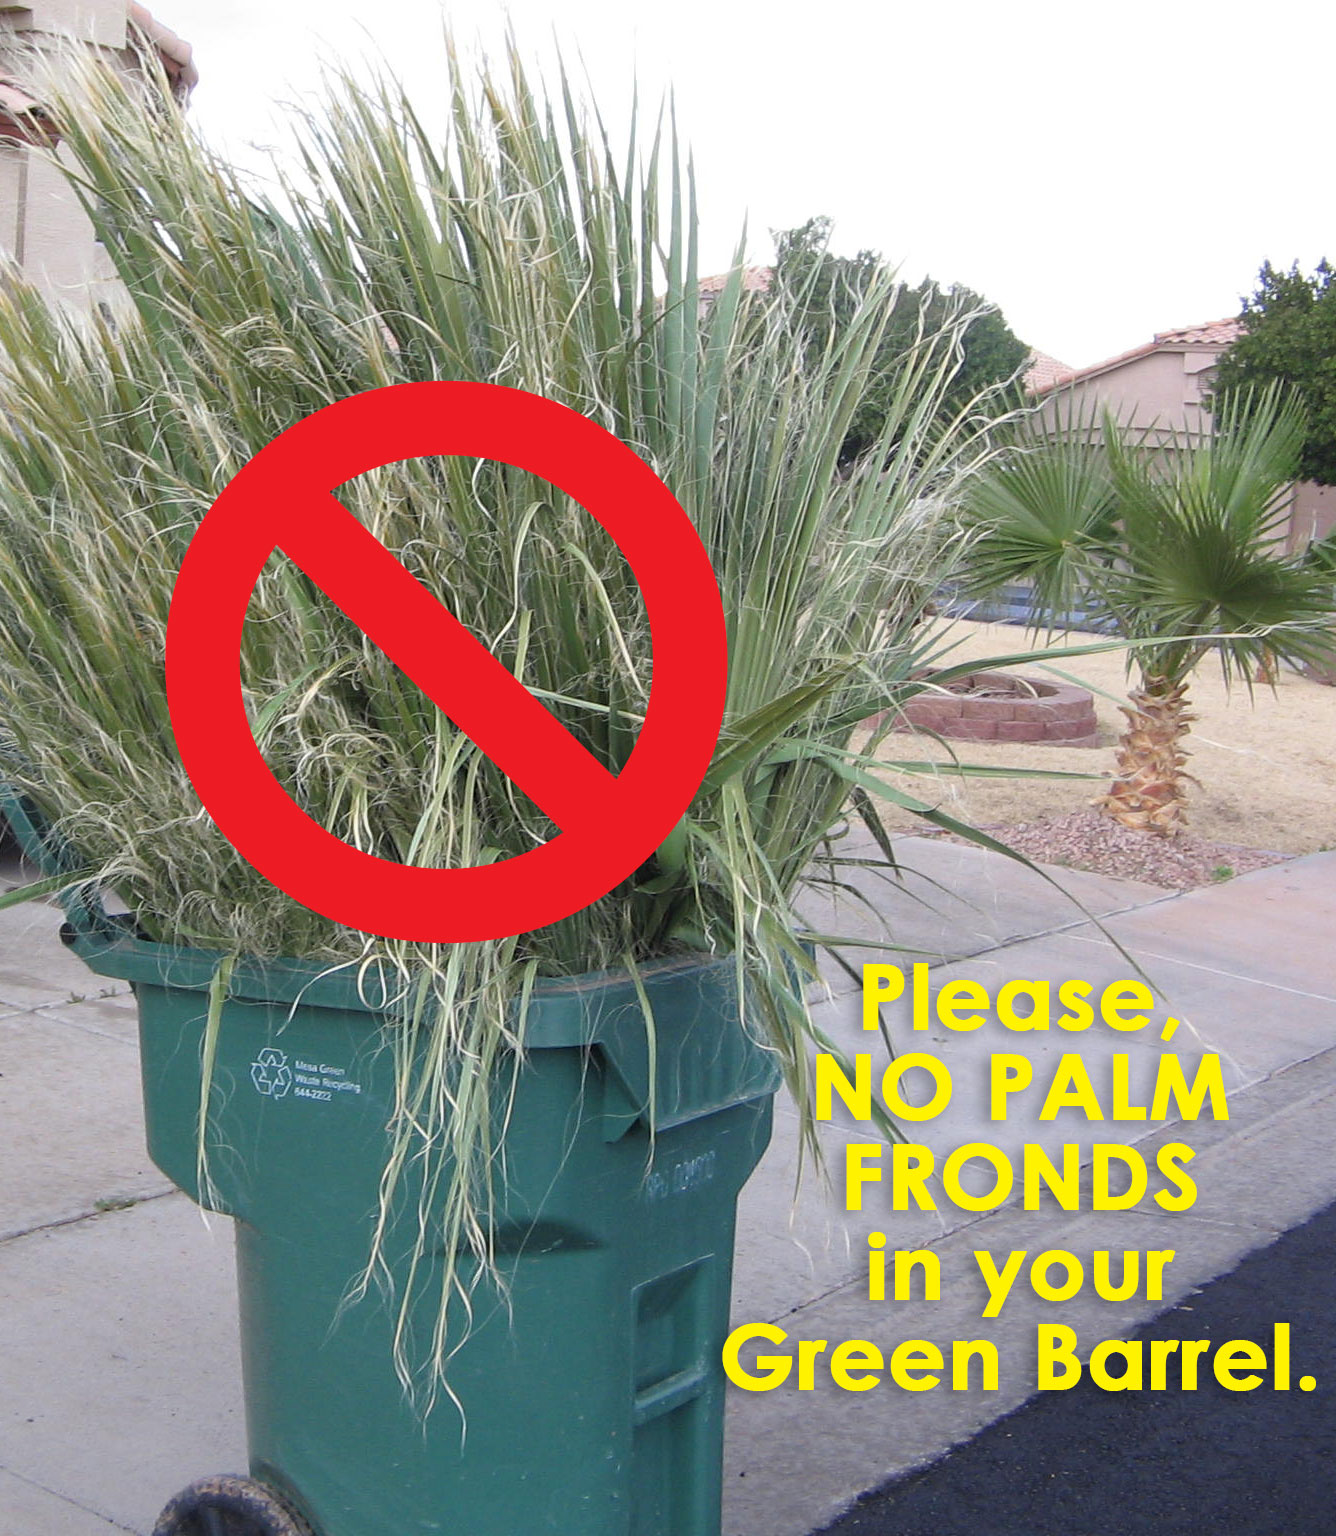 PalmFrondsInGreenBarrel_ProhibitSign